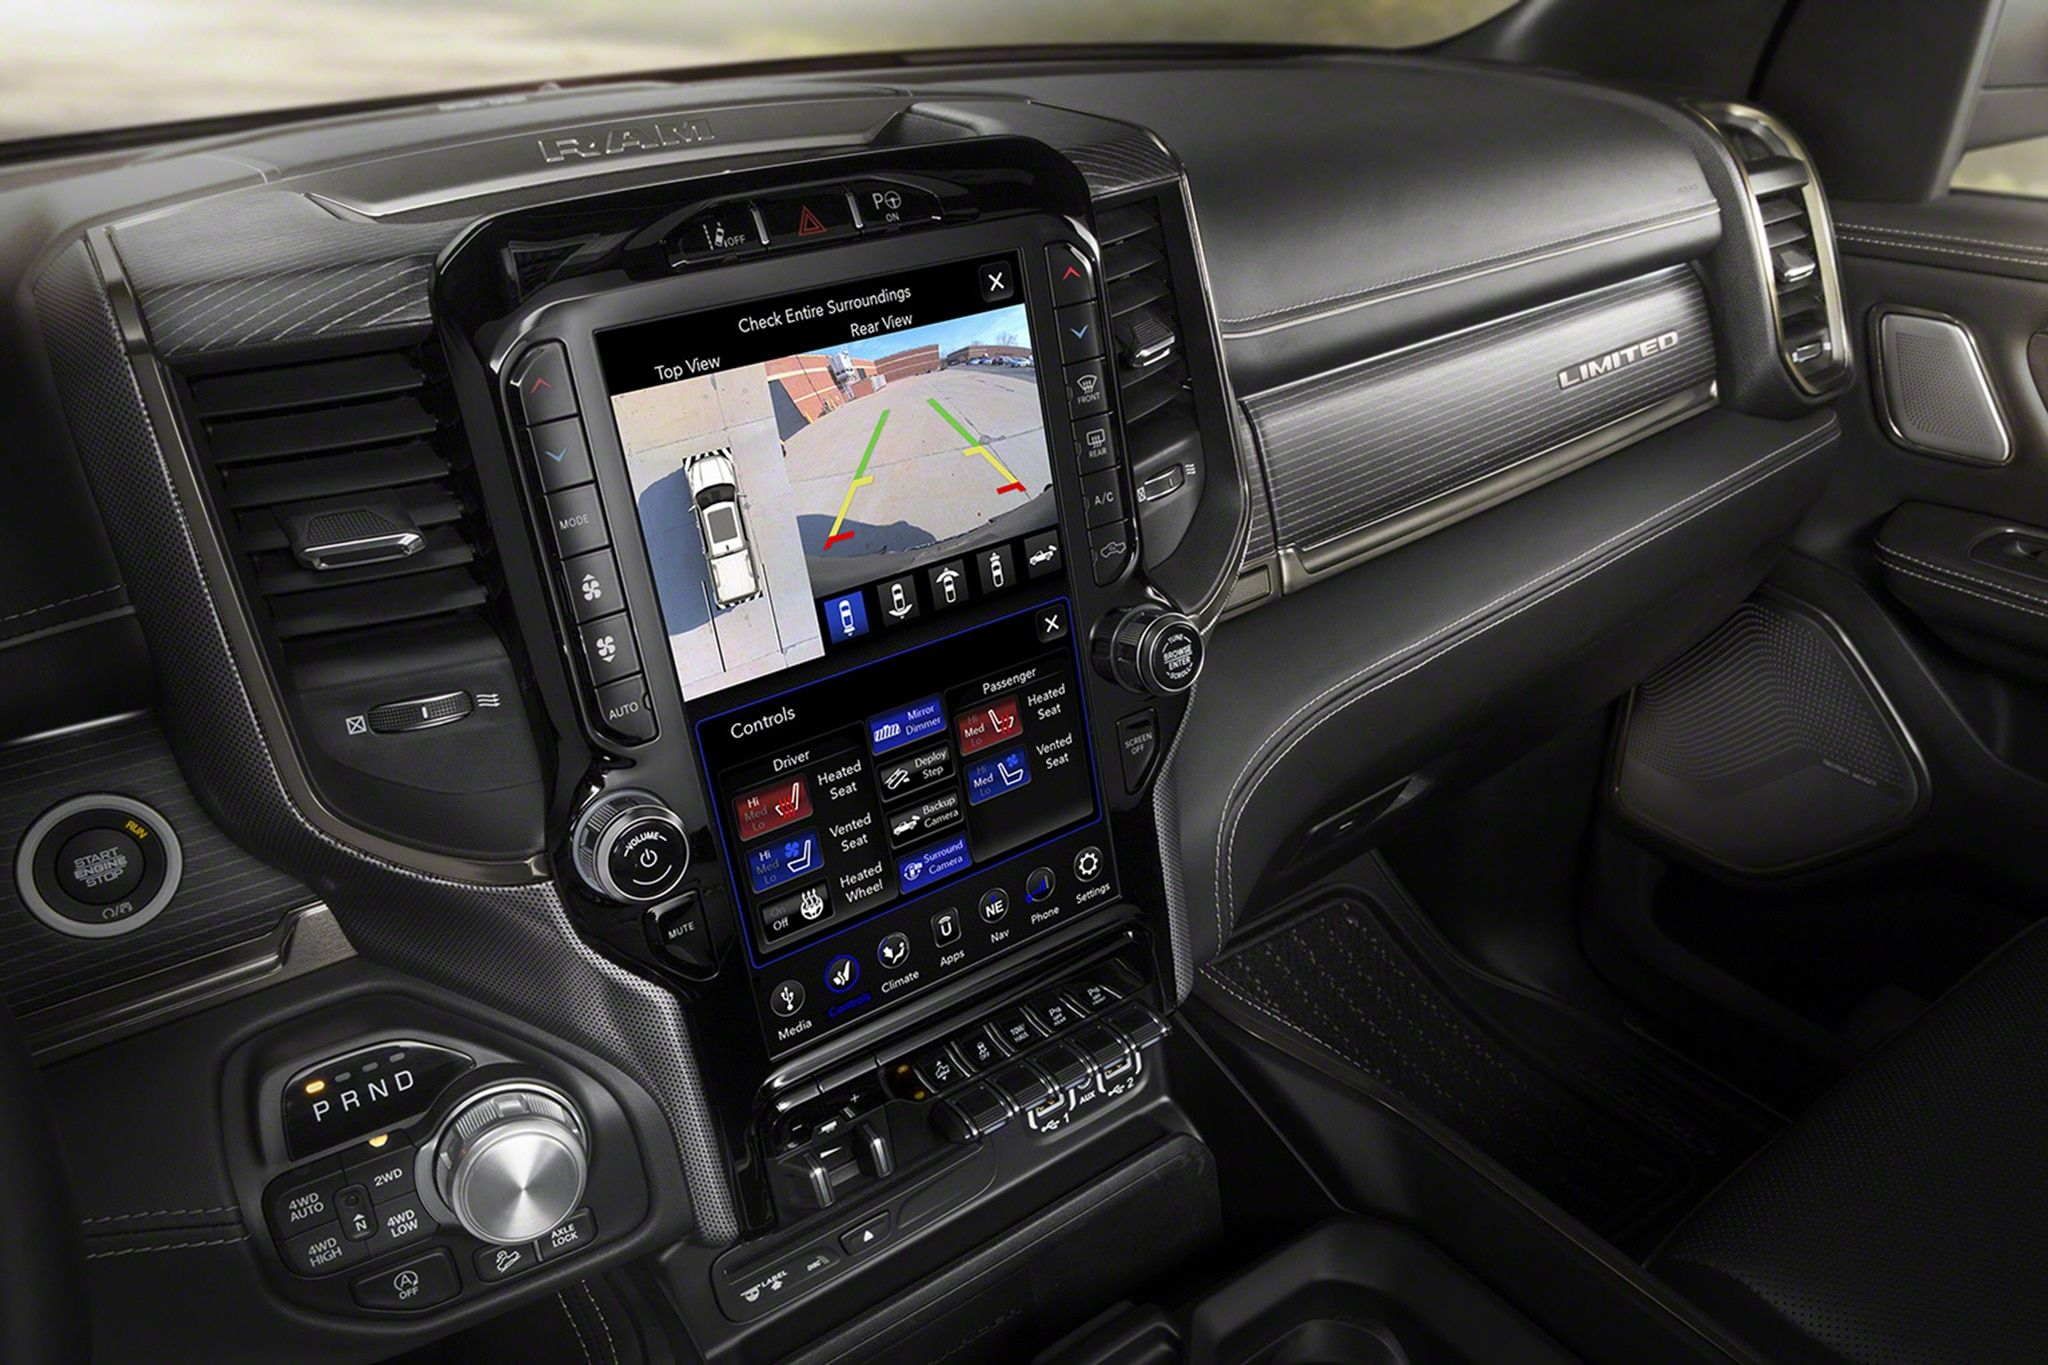 2019 Ram 1500 Infotainment Center Is A Portrait Oriented Bright And Sharp 12 Inch Display It Has A Brightness Of Dodge Ram 1500 Accessories Ram 1500 Dodge Ram